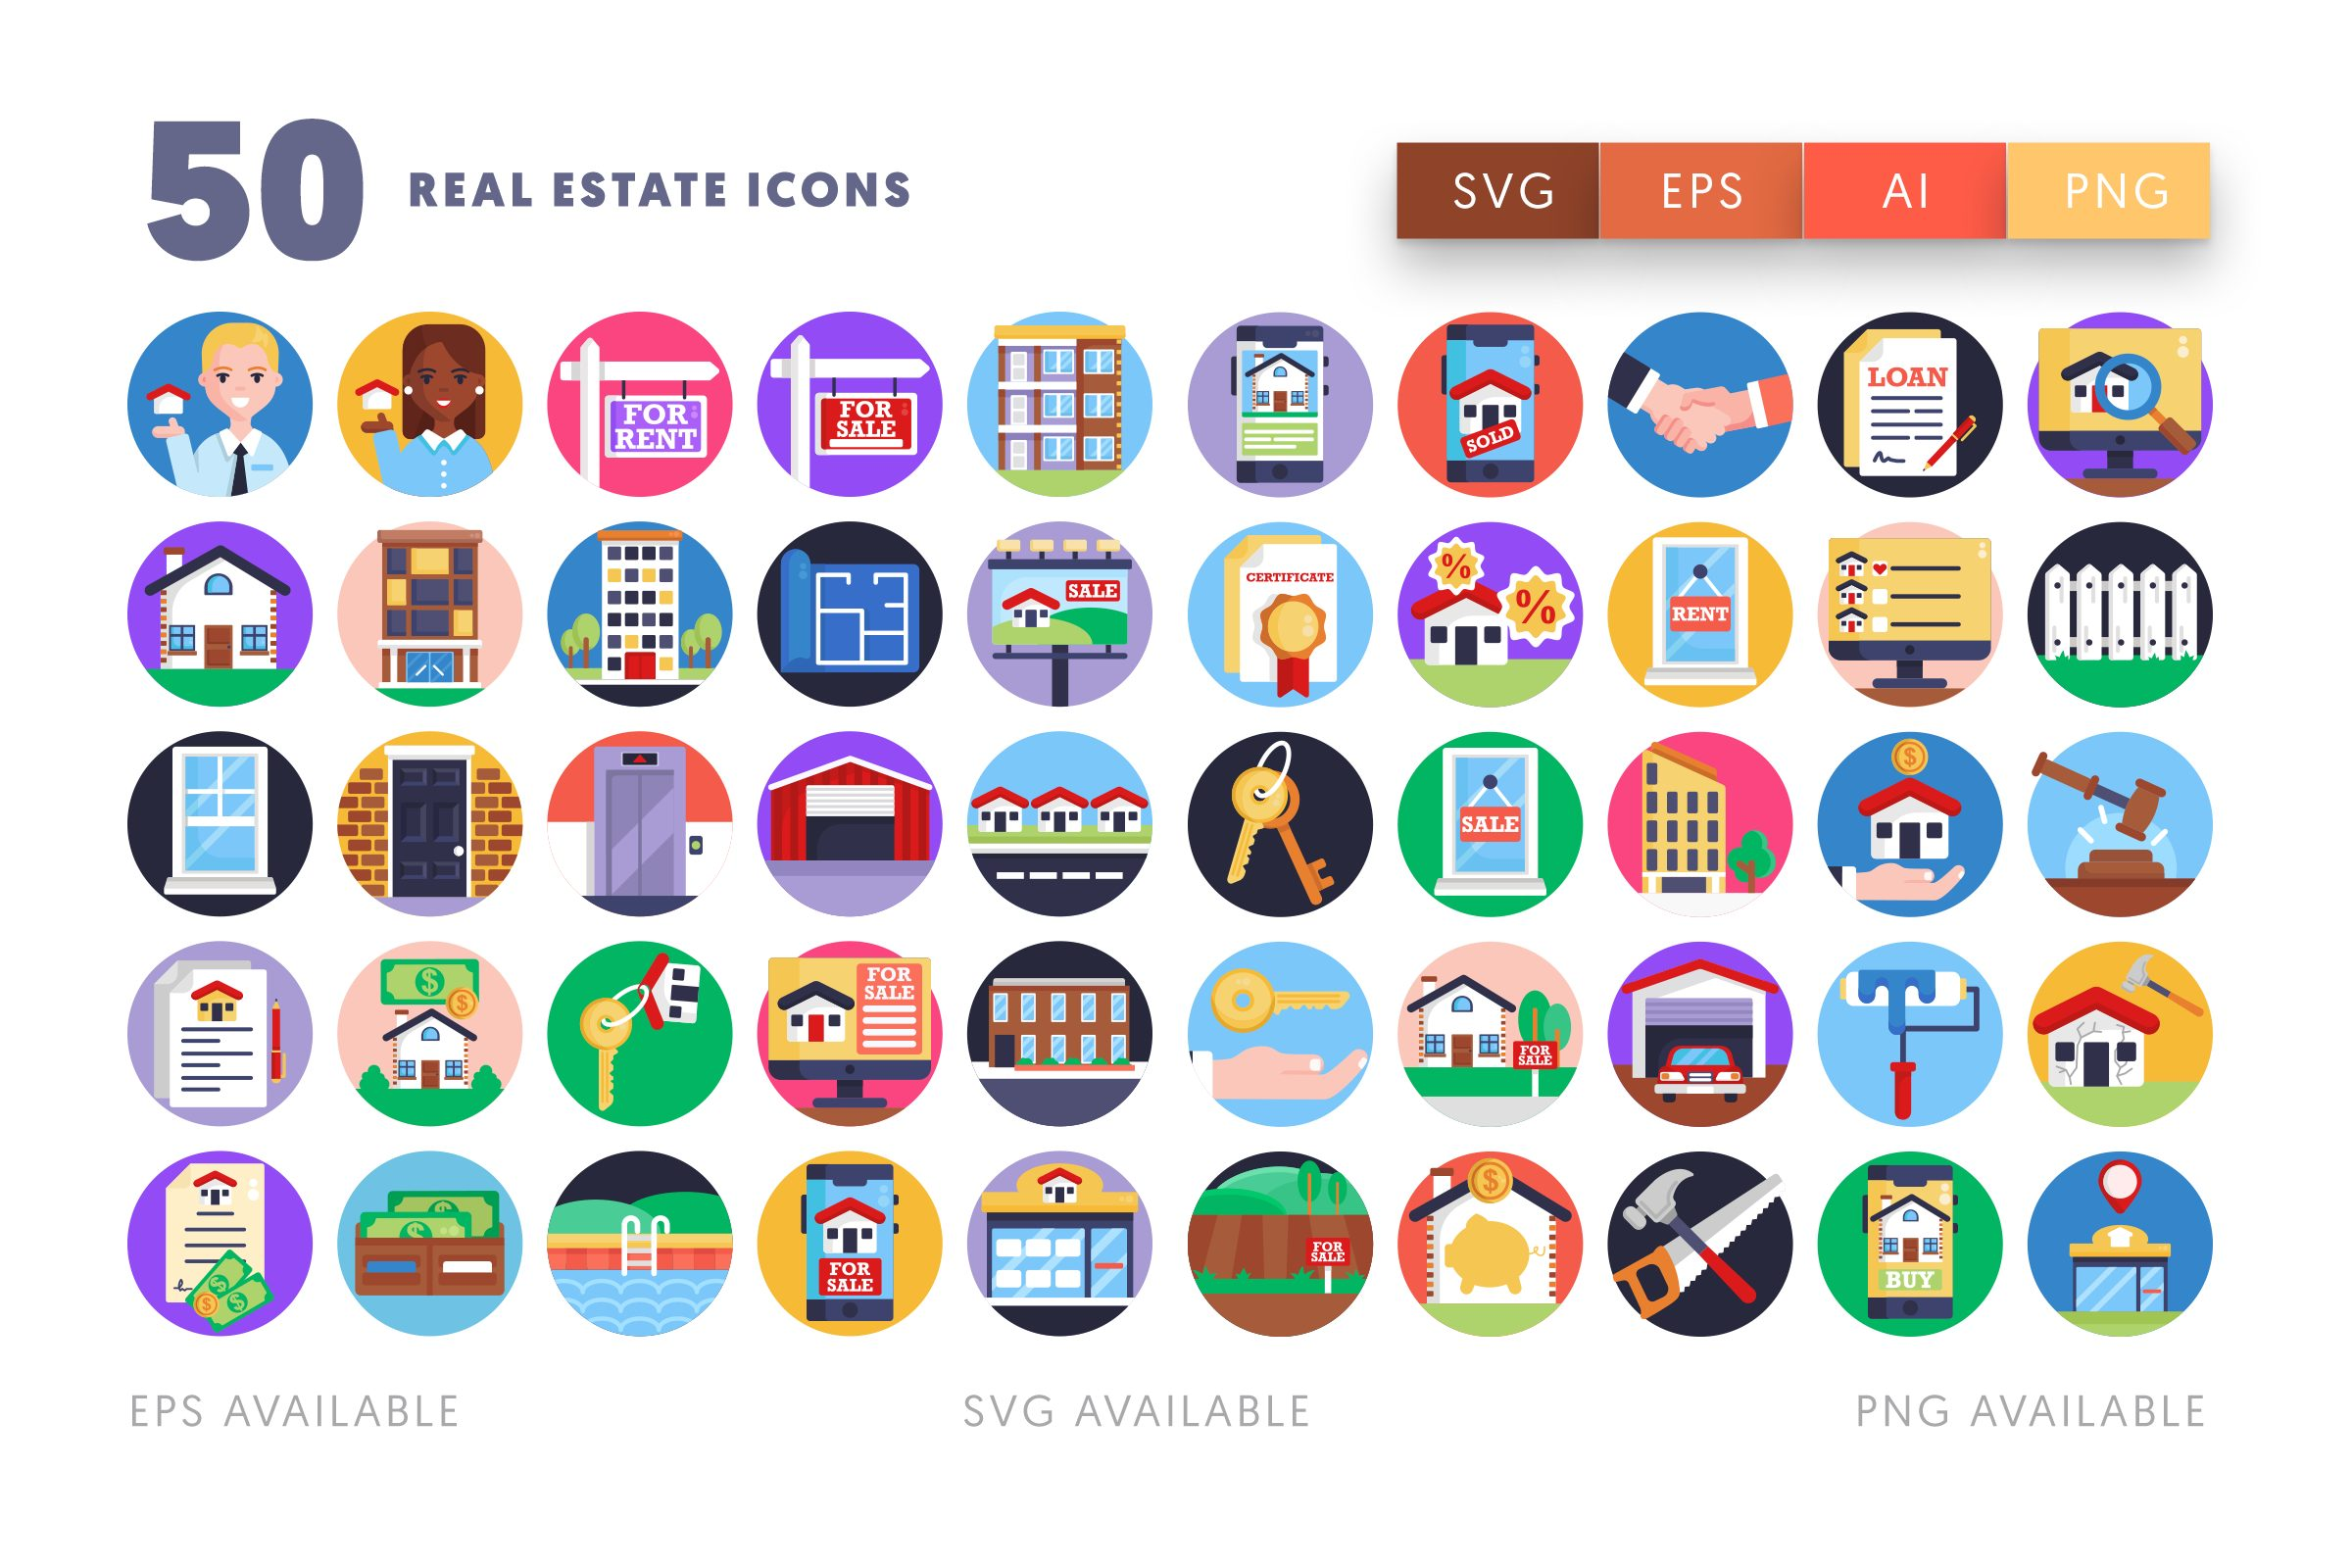 Real Estate icons png/svg/eps